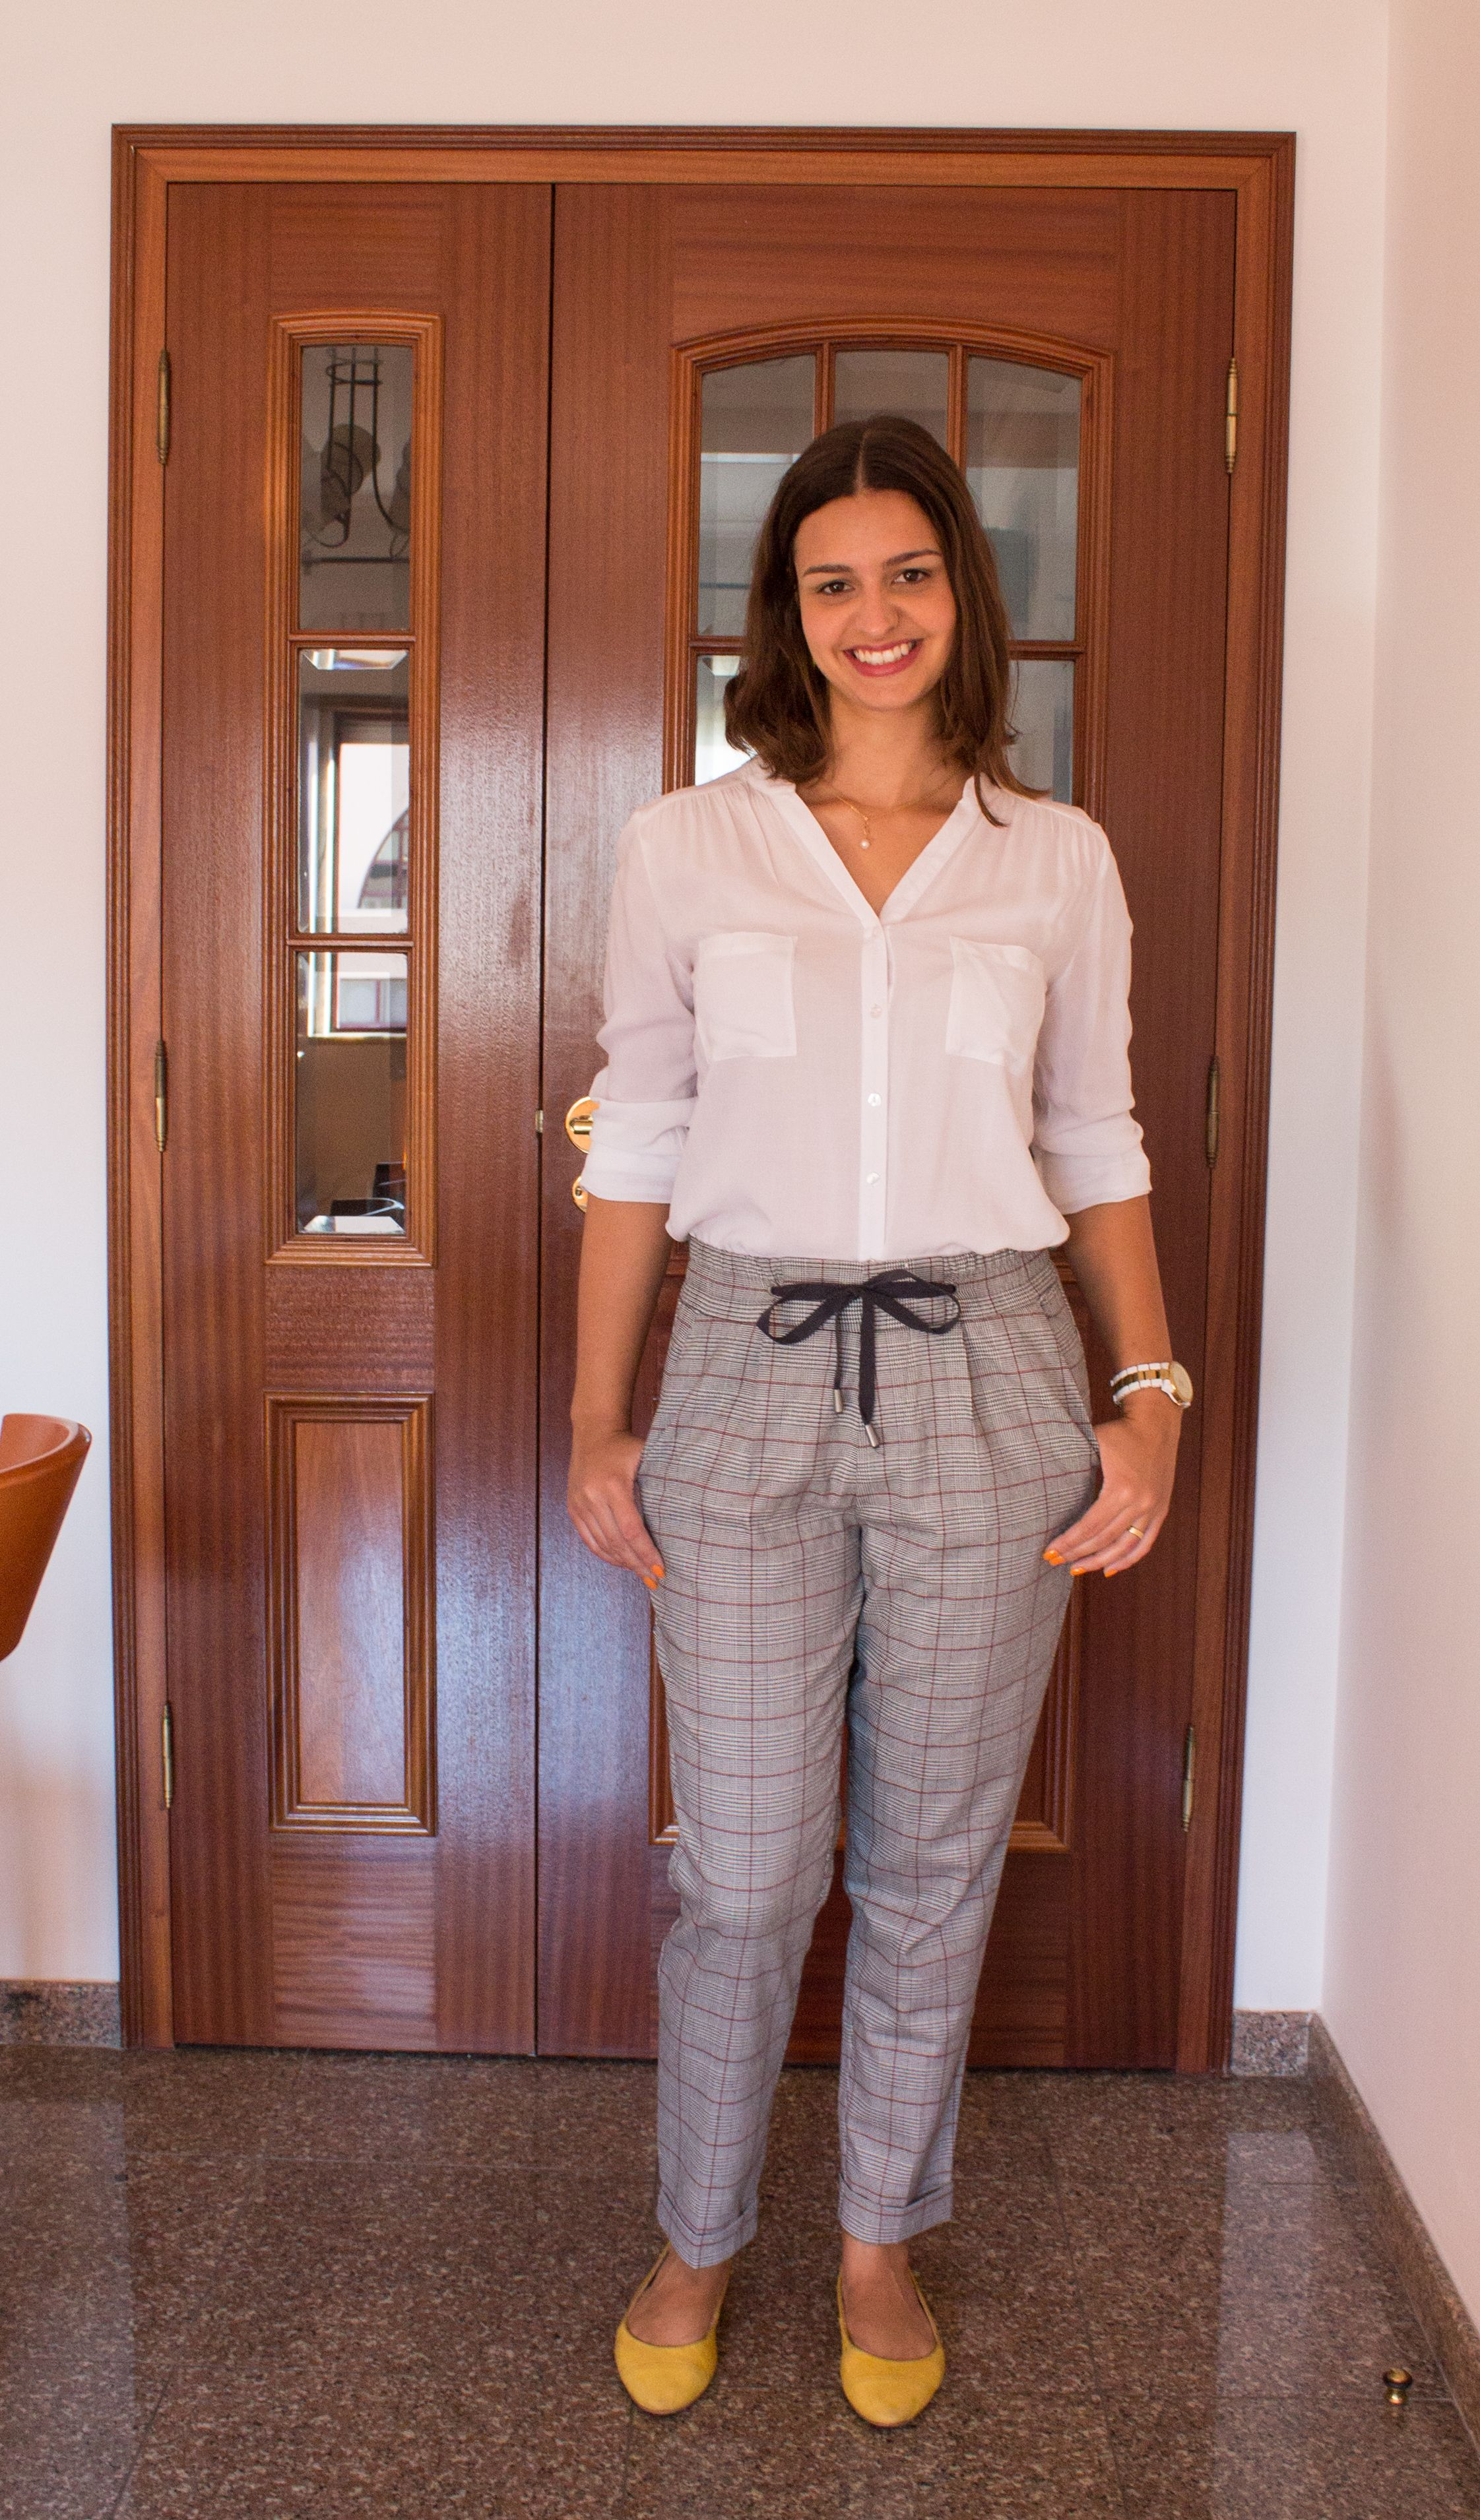 Calça pijama xadrez, camisa branca e sapatilha amarela/ plaid pants, white shirt, yellow shoes